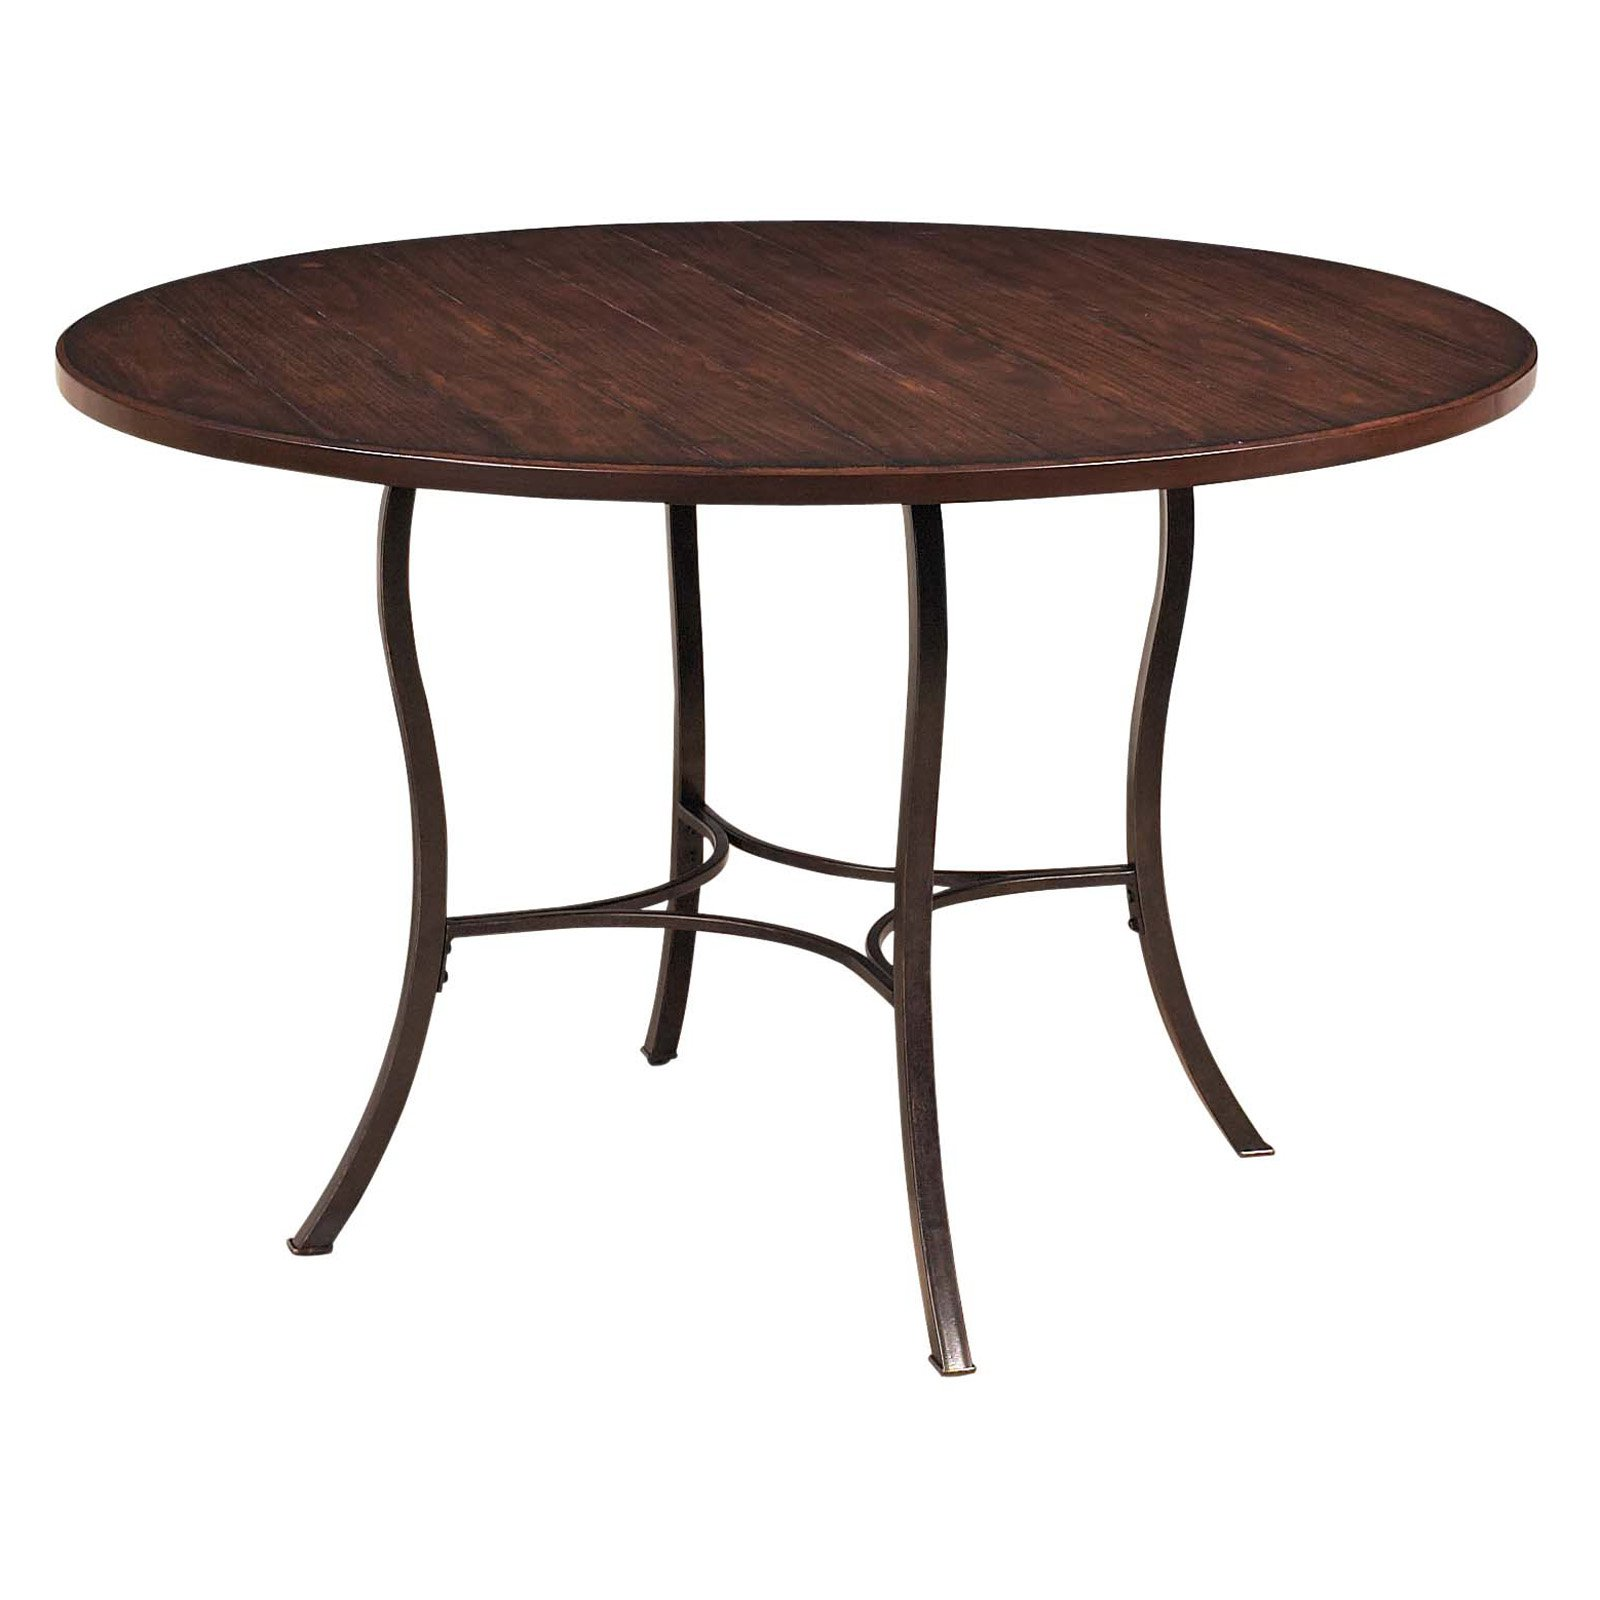 Hillsdale Cameron Round Wood and Metal Dining Table